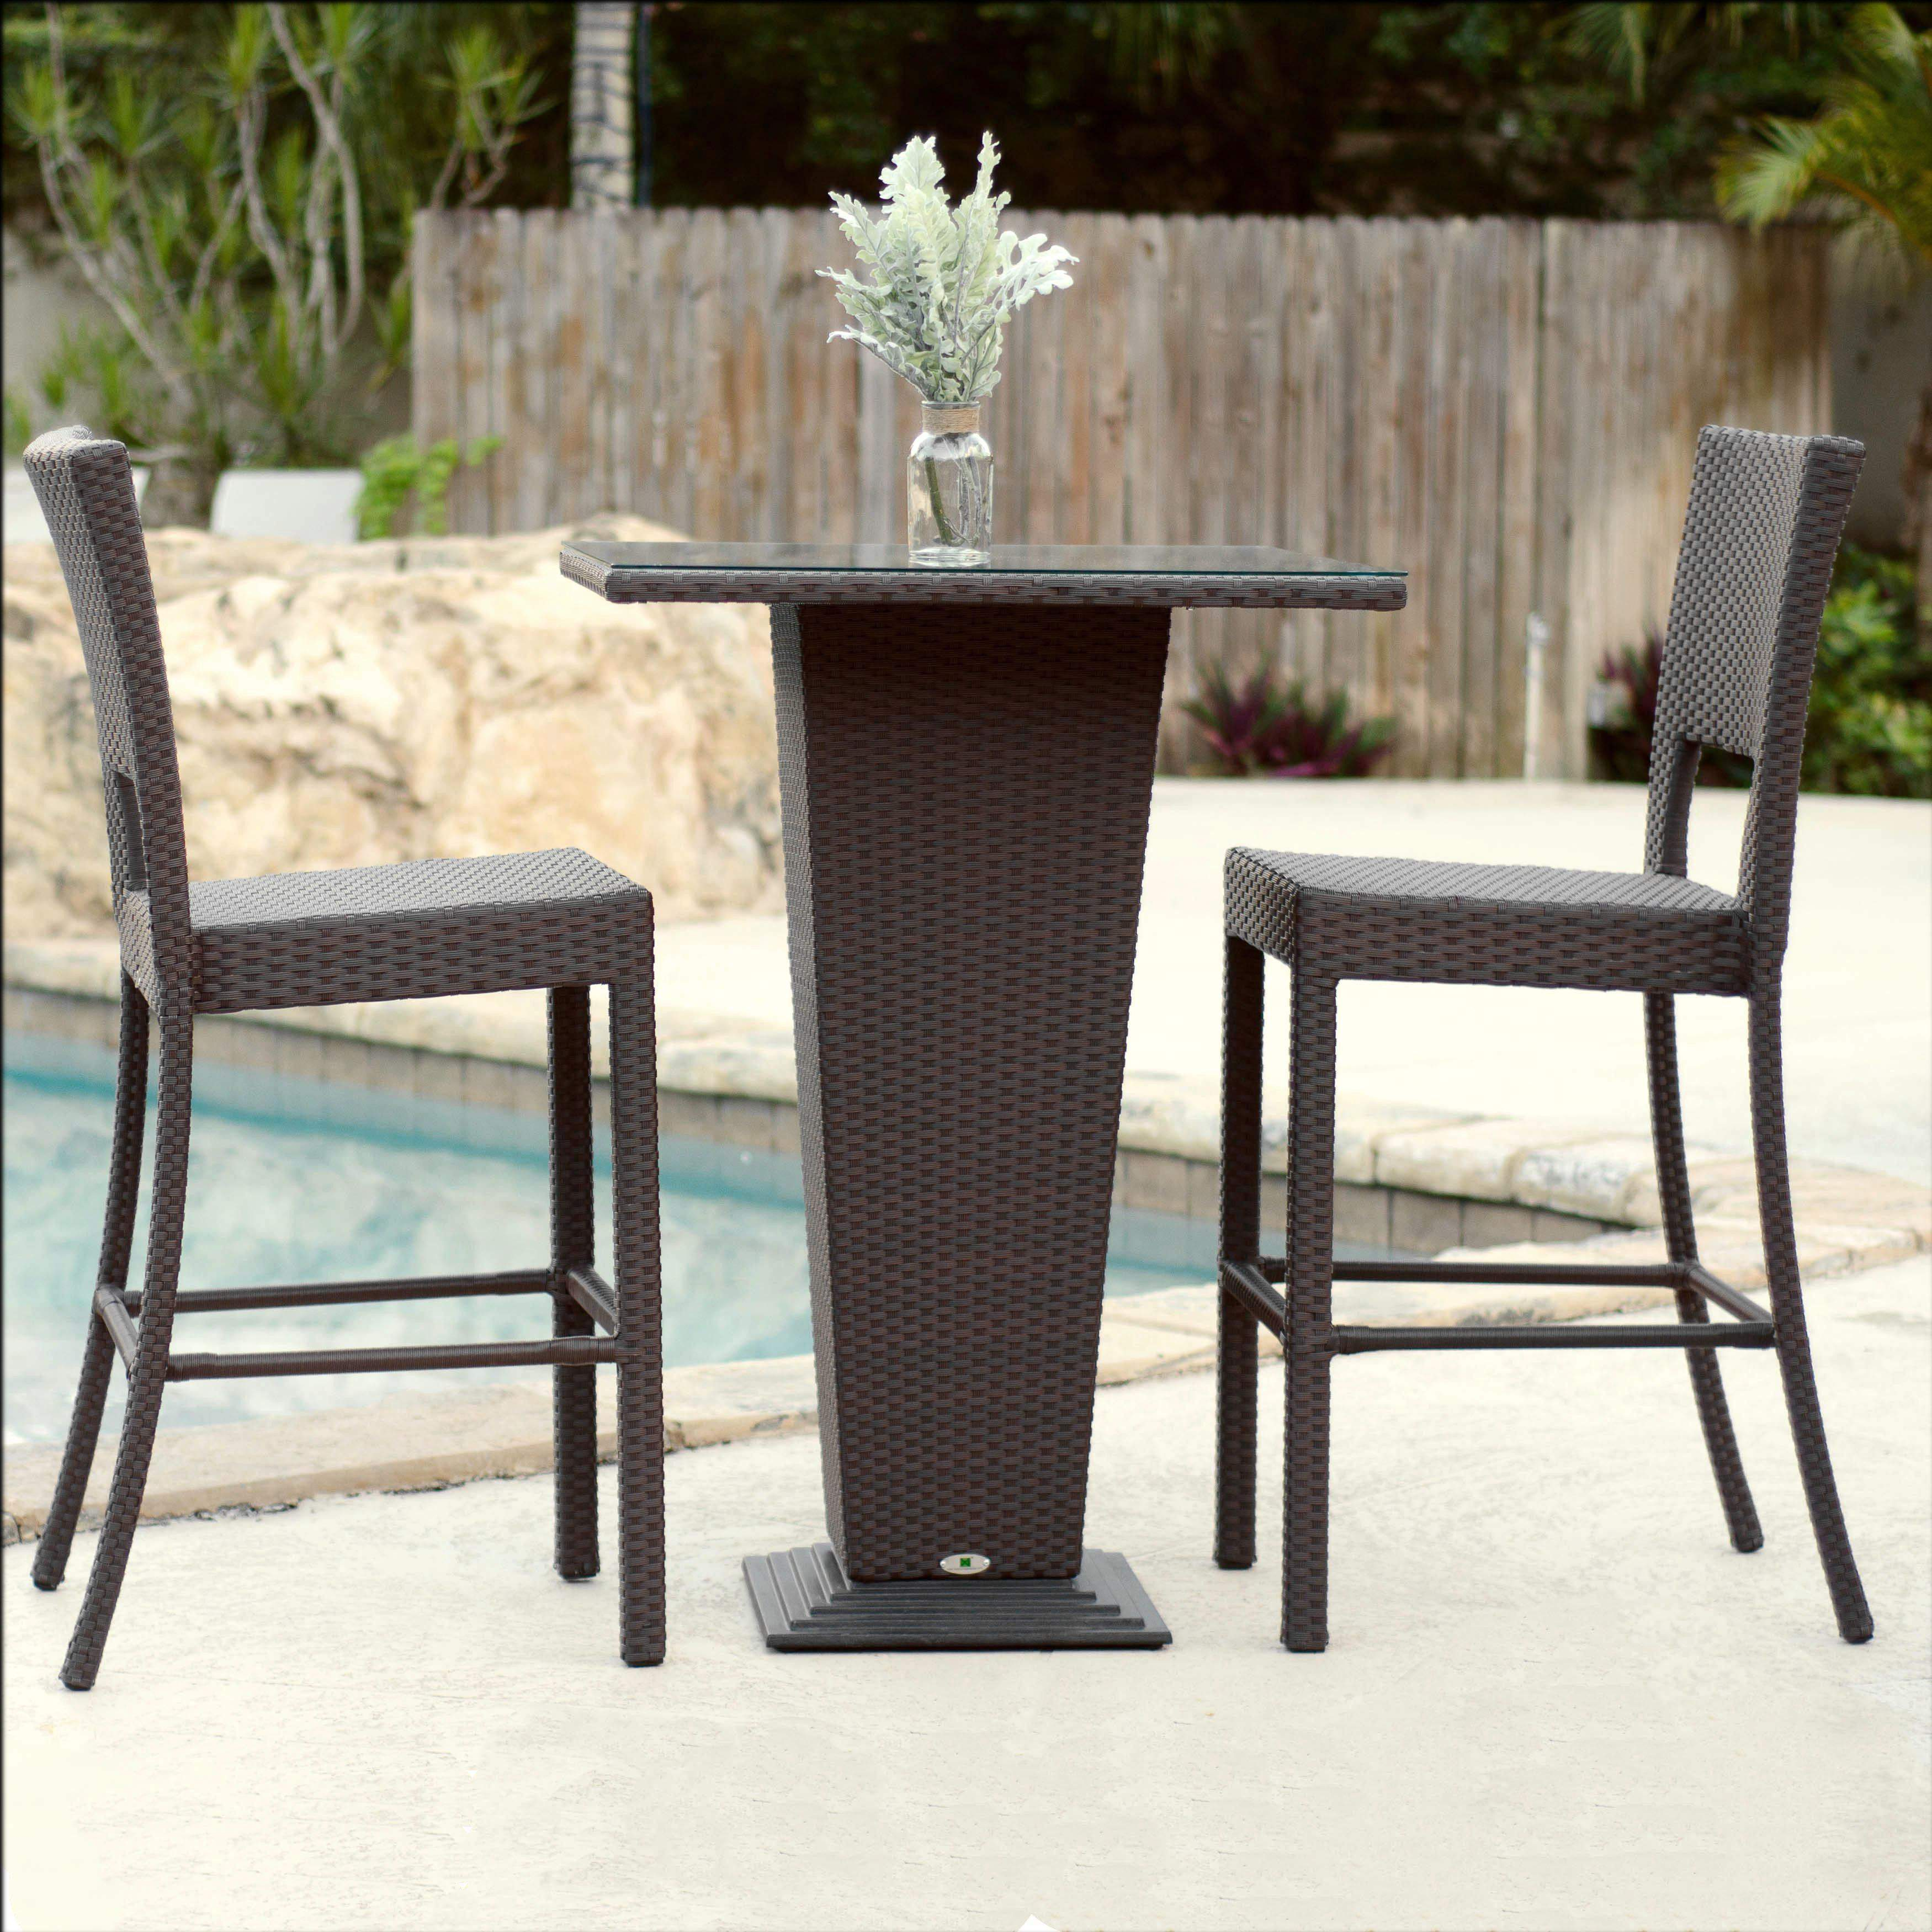 folding outdoor side table round patio dining furniture for small balconies and chairs runner quilt kits brass glass end homesense armchair gray console mirrored chest room set